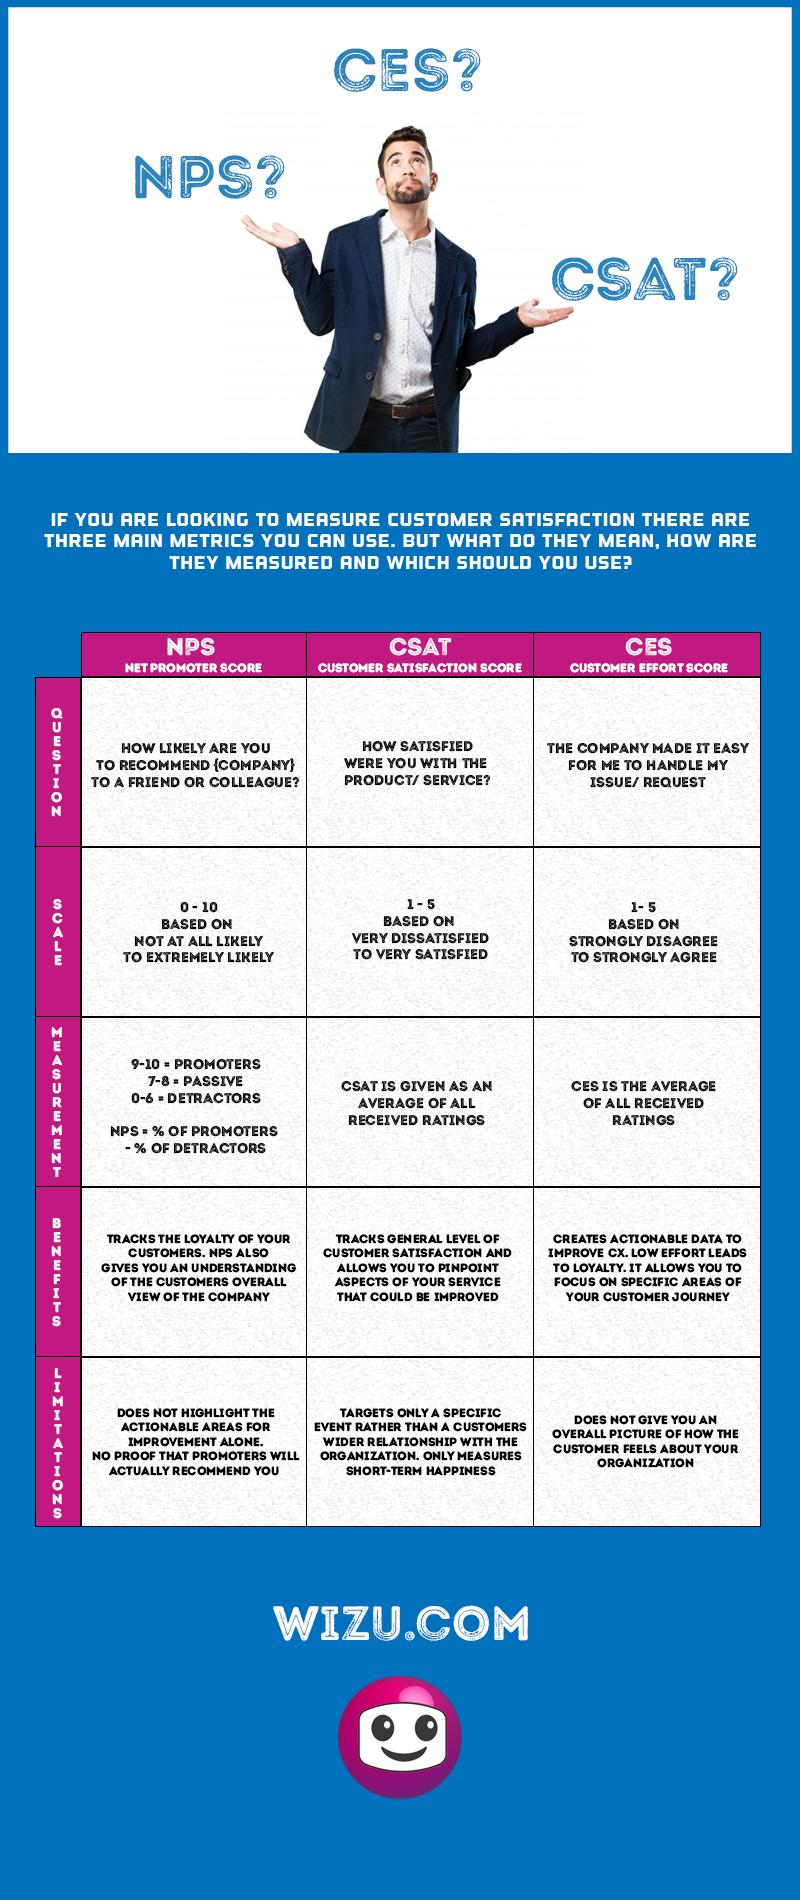 NPS CES and CSAT Infographic